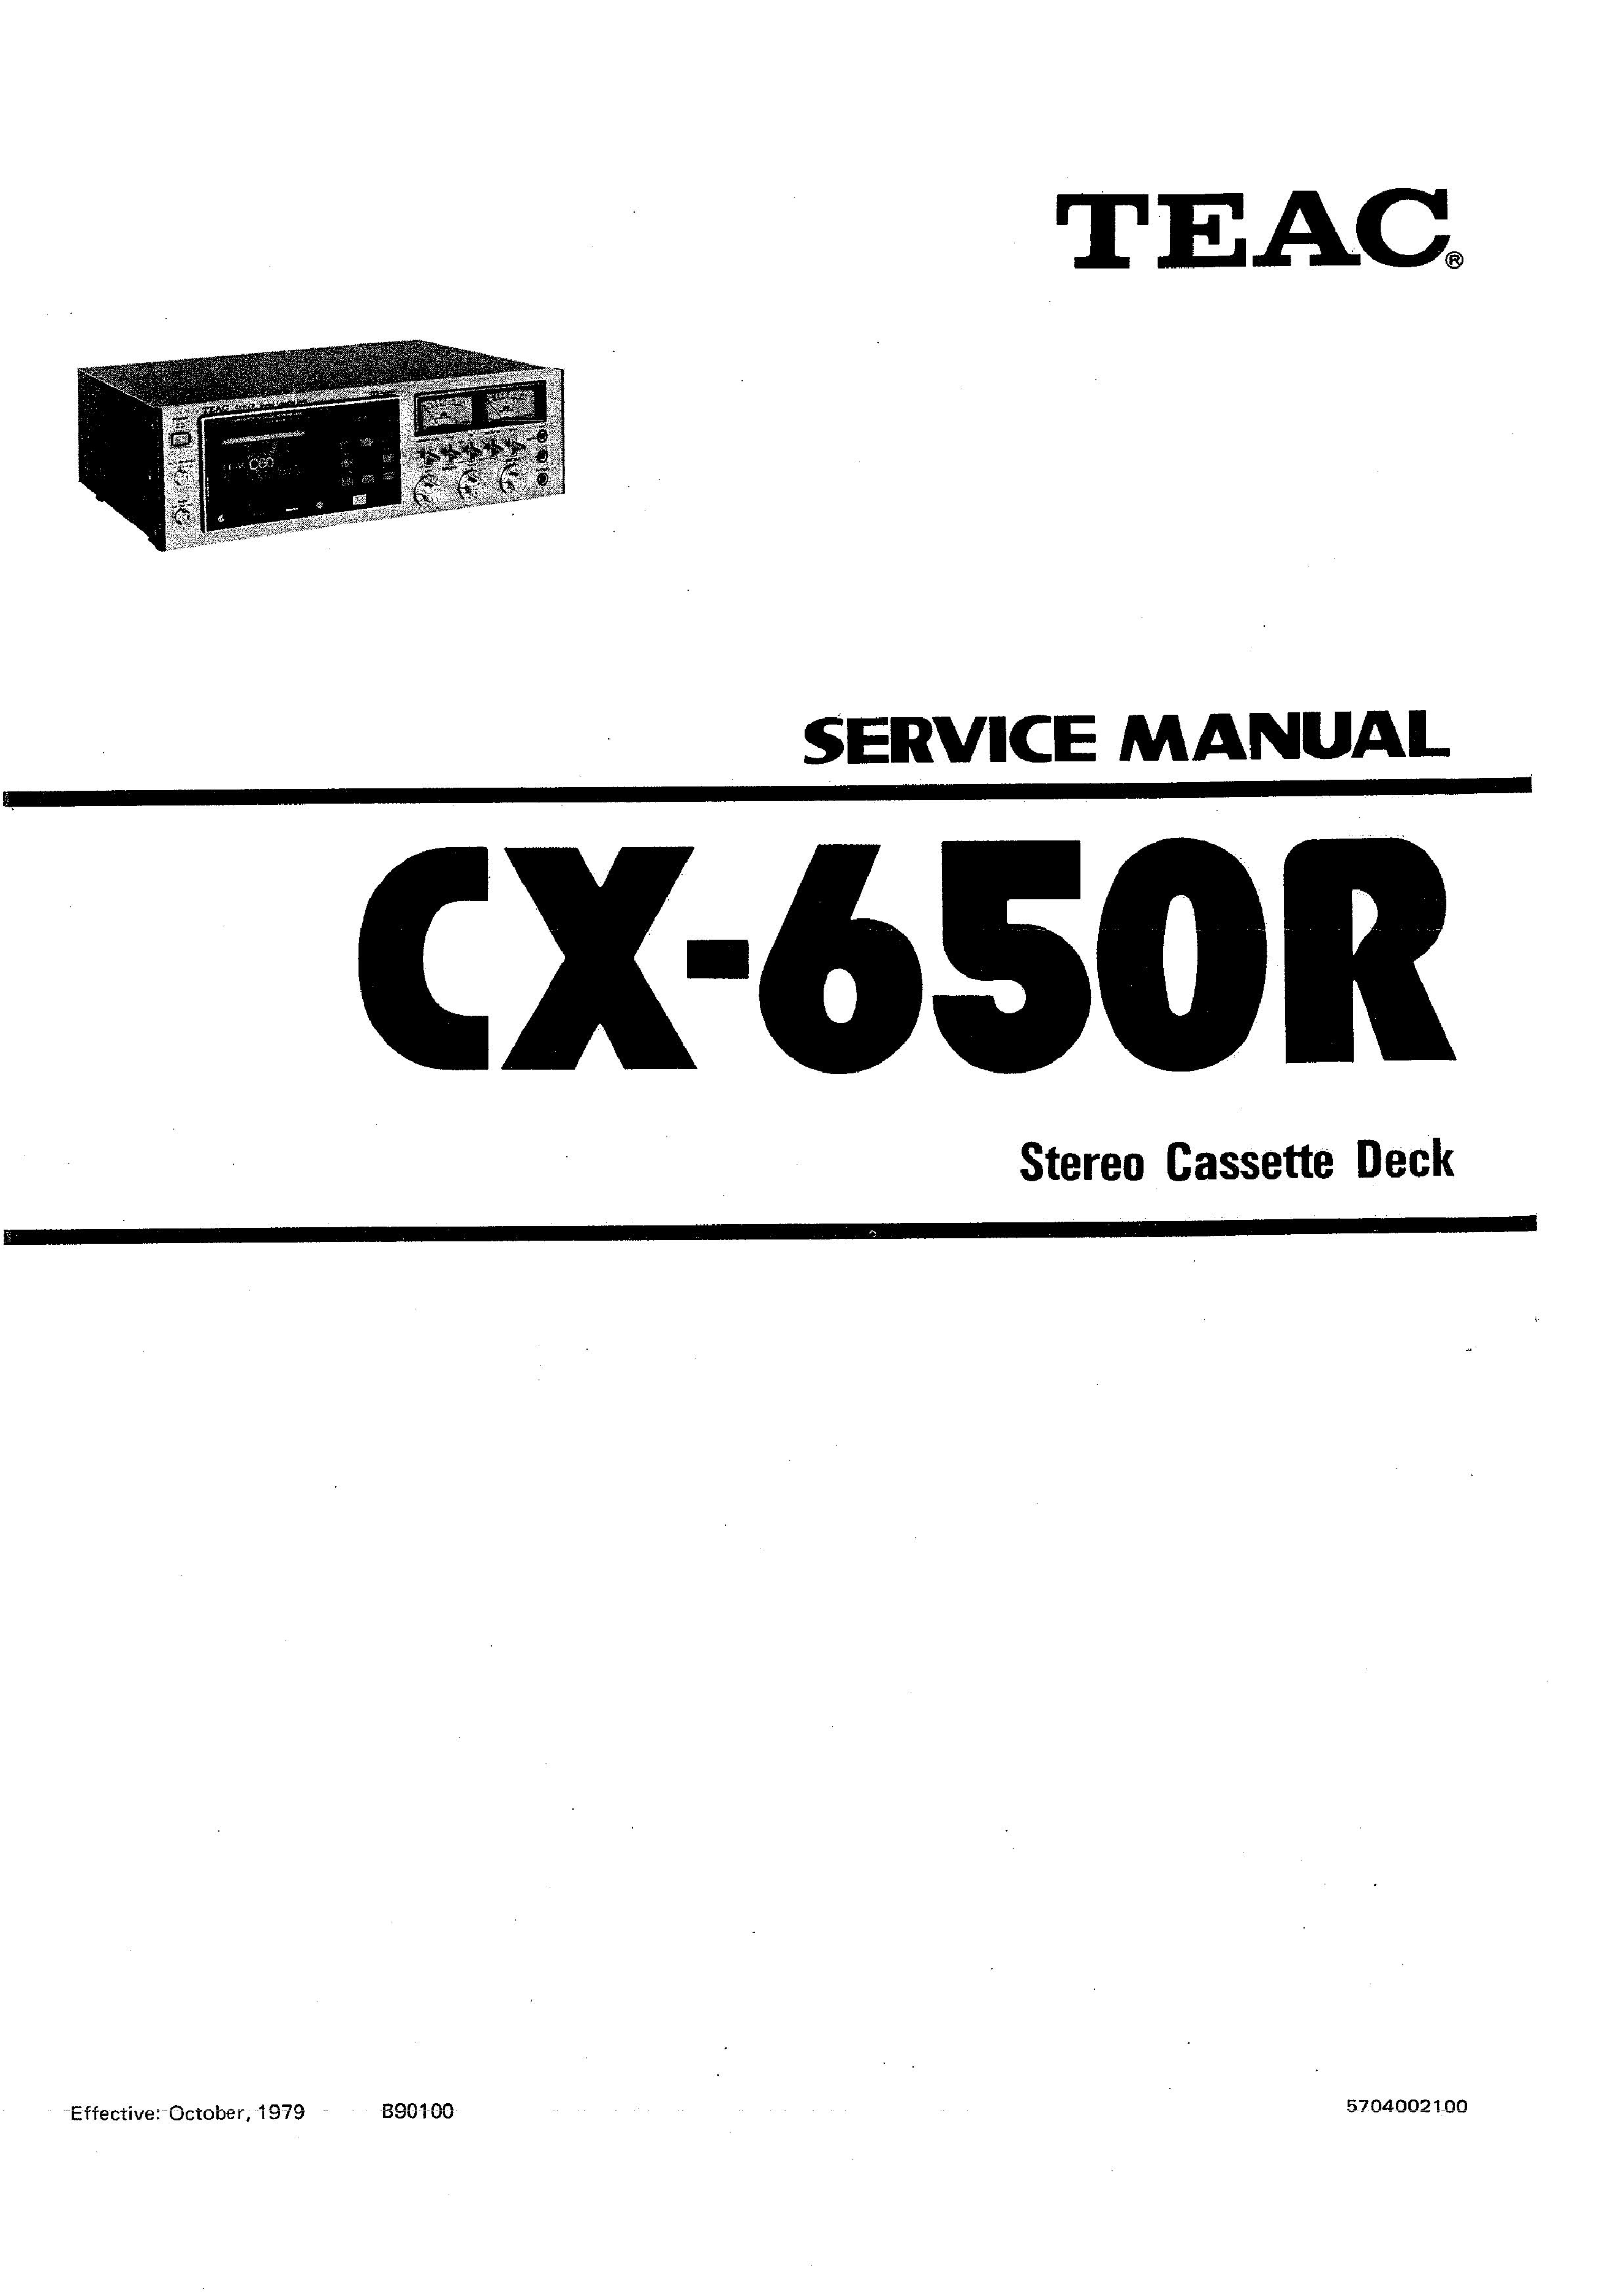 Service Manual for TEAC CX-650R - Download